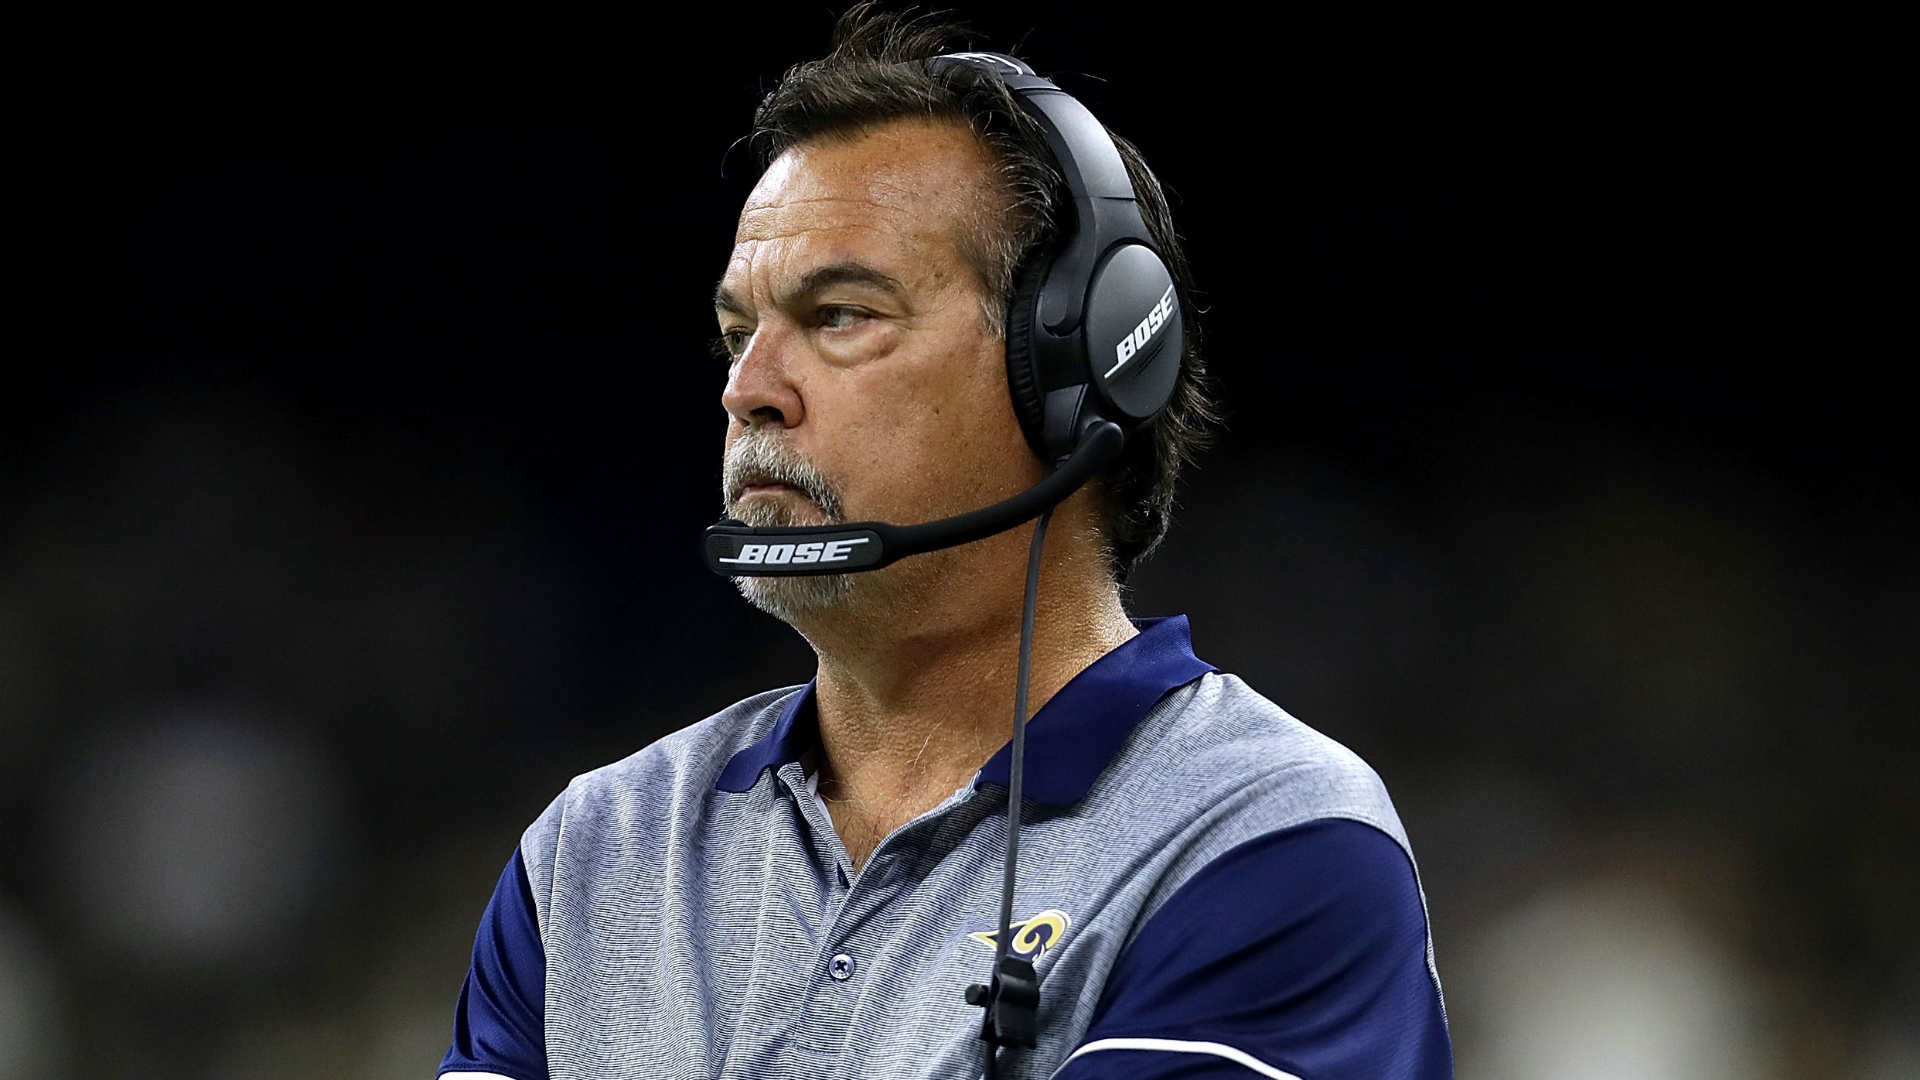 Ex-Rams coach Jeff Fisher wants credit for team's recent success